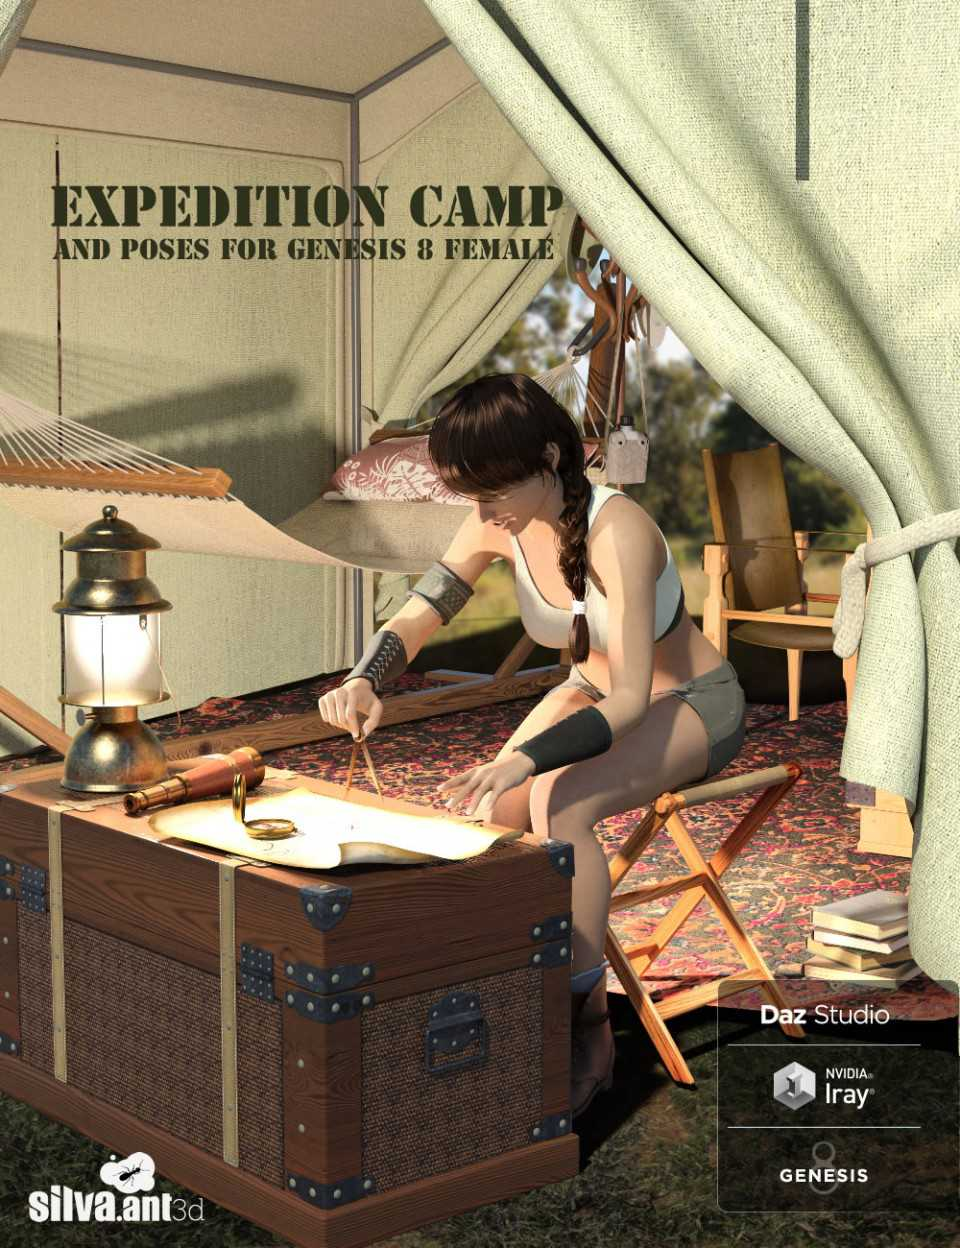 Expedition Camp